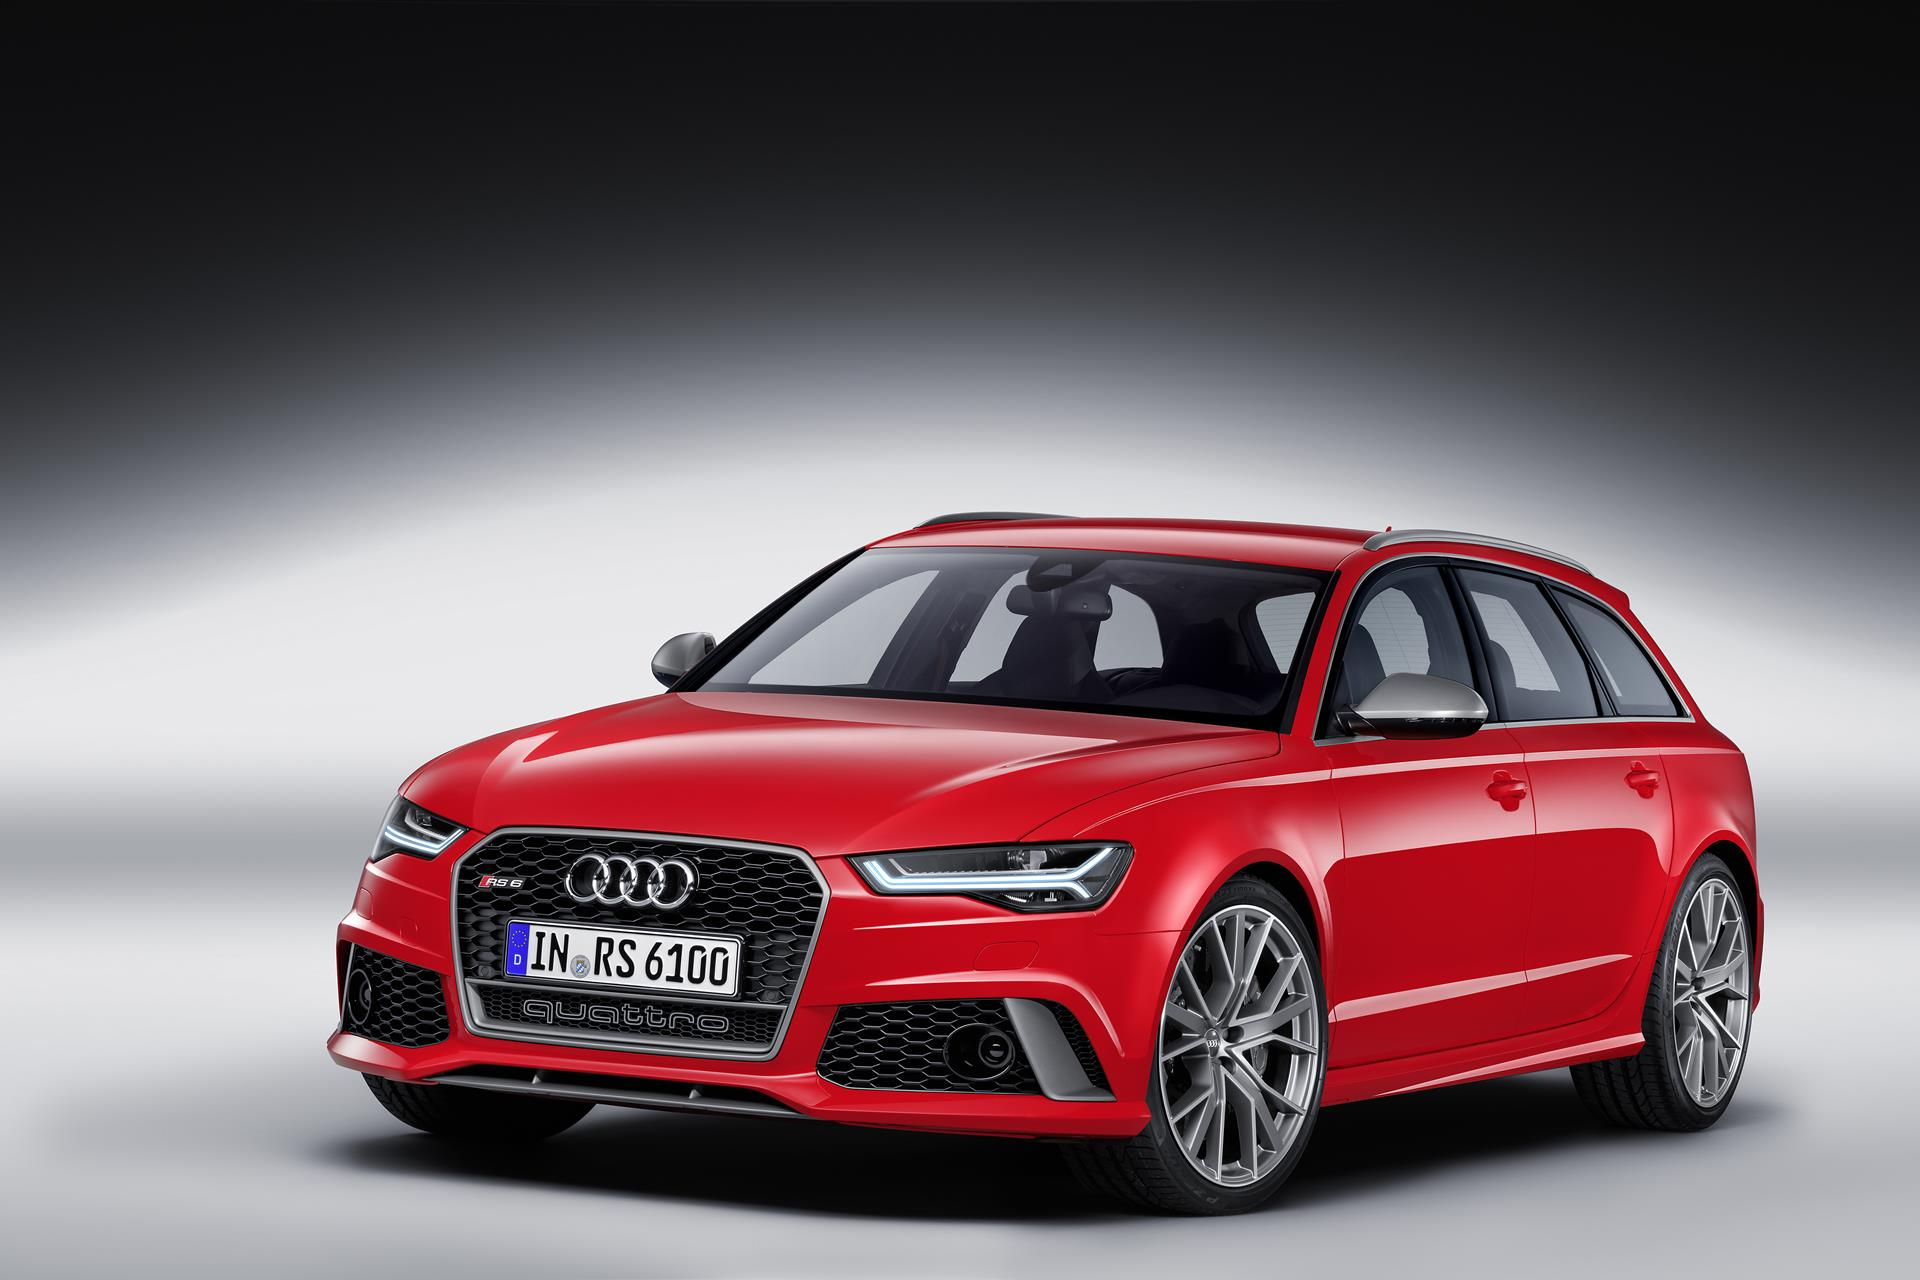 2016 audi rs 6 avant performance. Black Bedroom Furniture Sets. Home Design Ideas